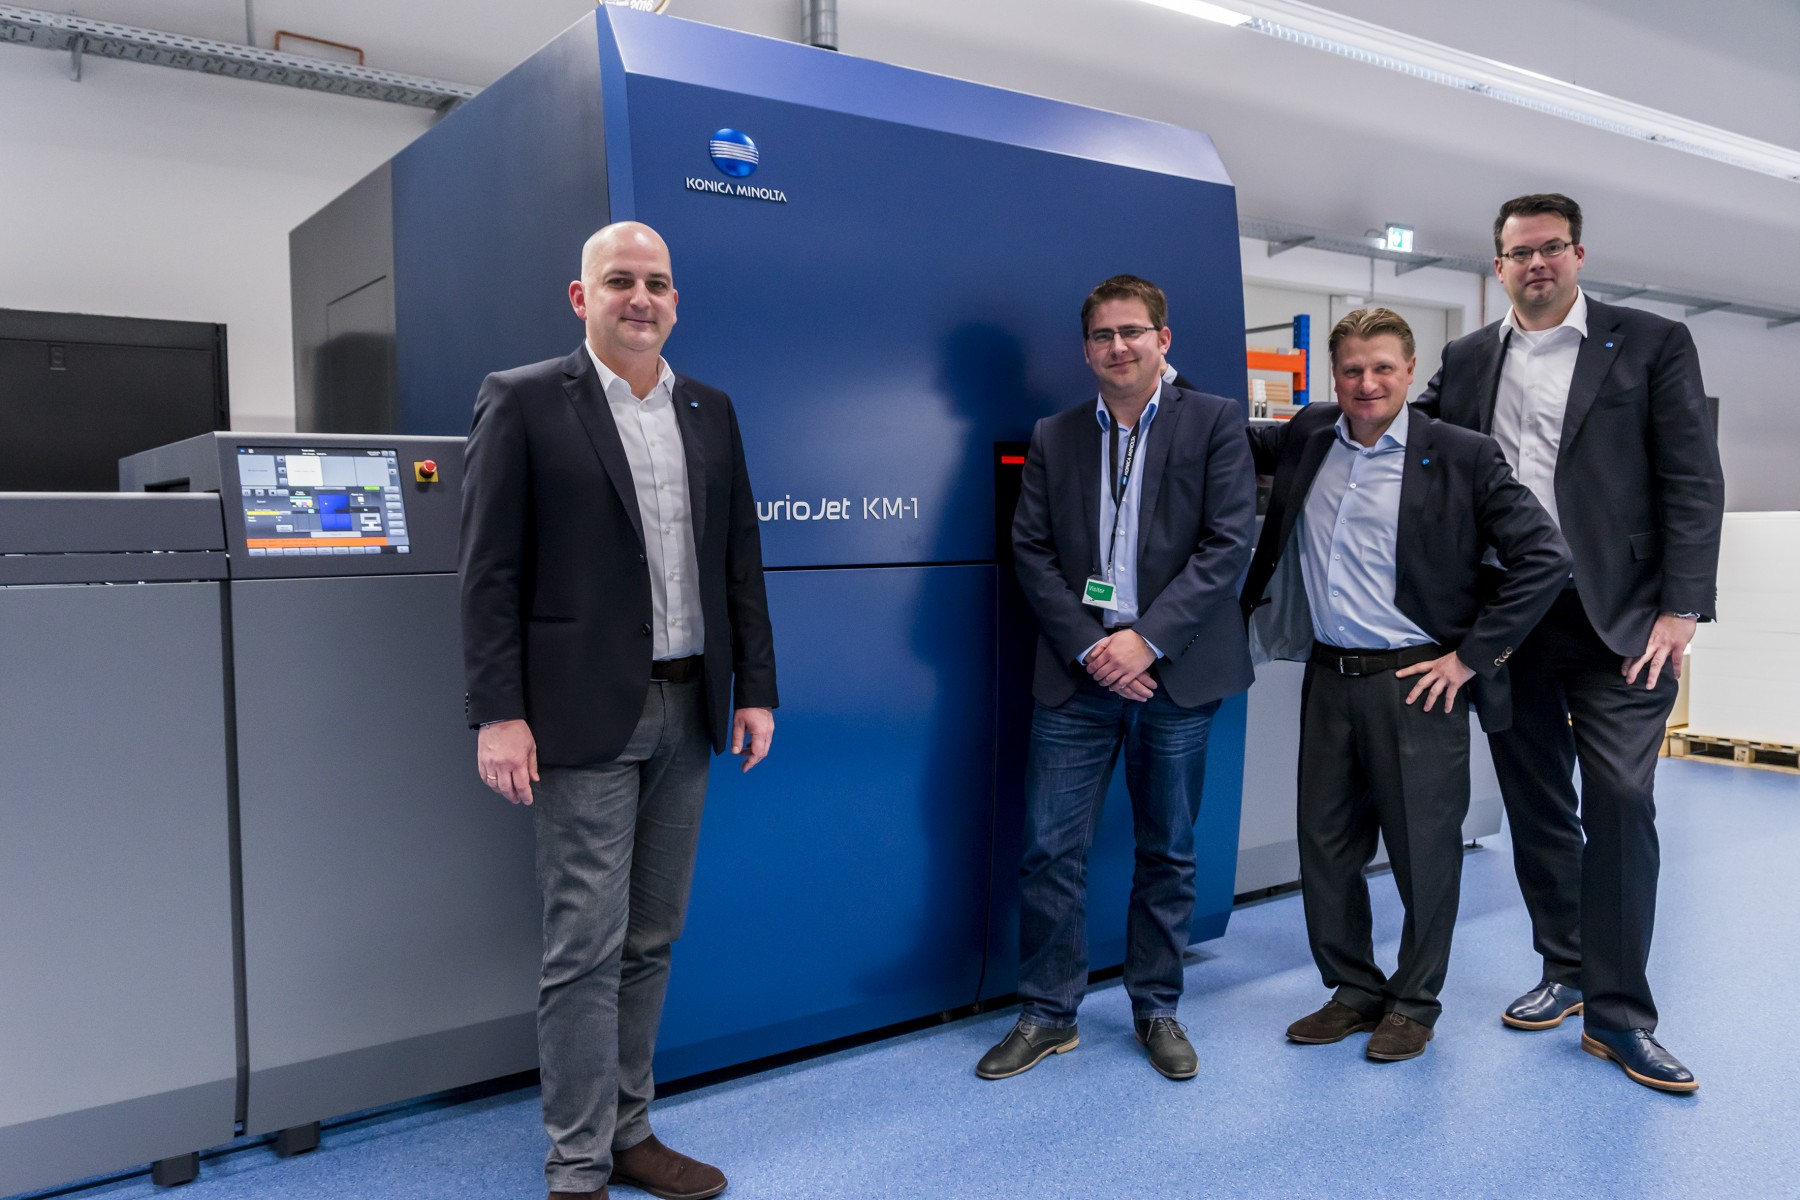 Christian Rittmoeller, Daniel Baier (Rehms Druck), Markus Neumann and Thorsten Kinnen (all Konica Minolta) in front of AccurioJet KM-1